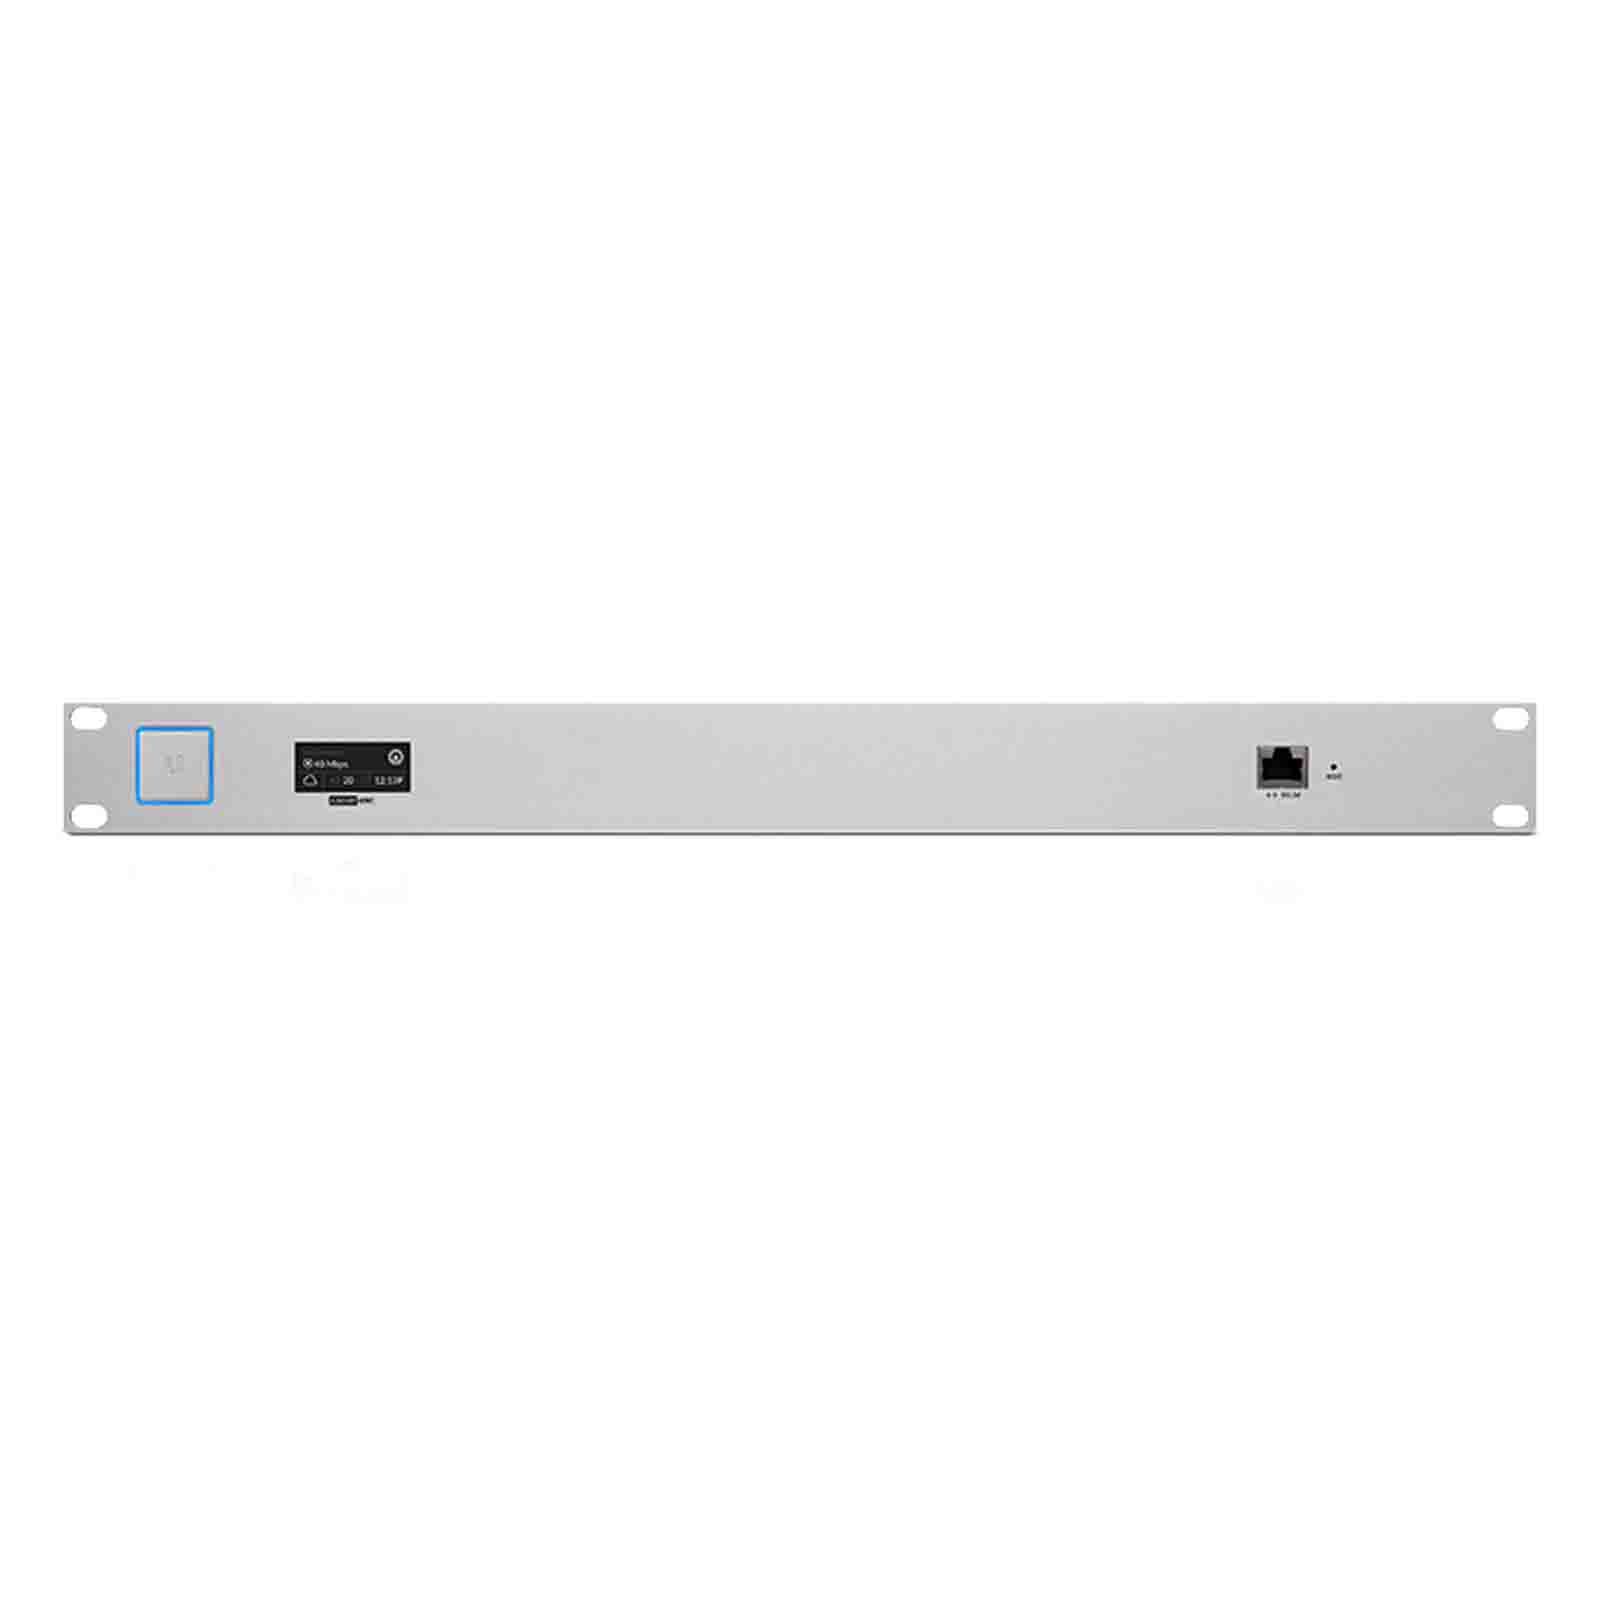 UBIQUITI UniFi Cloud Key GEN 2 UCK-G2 Rack Mount